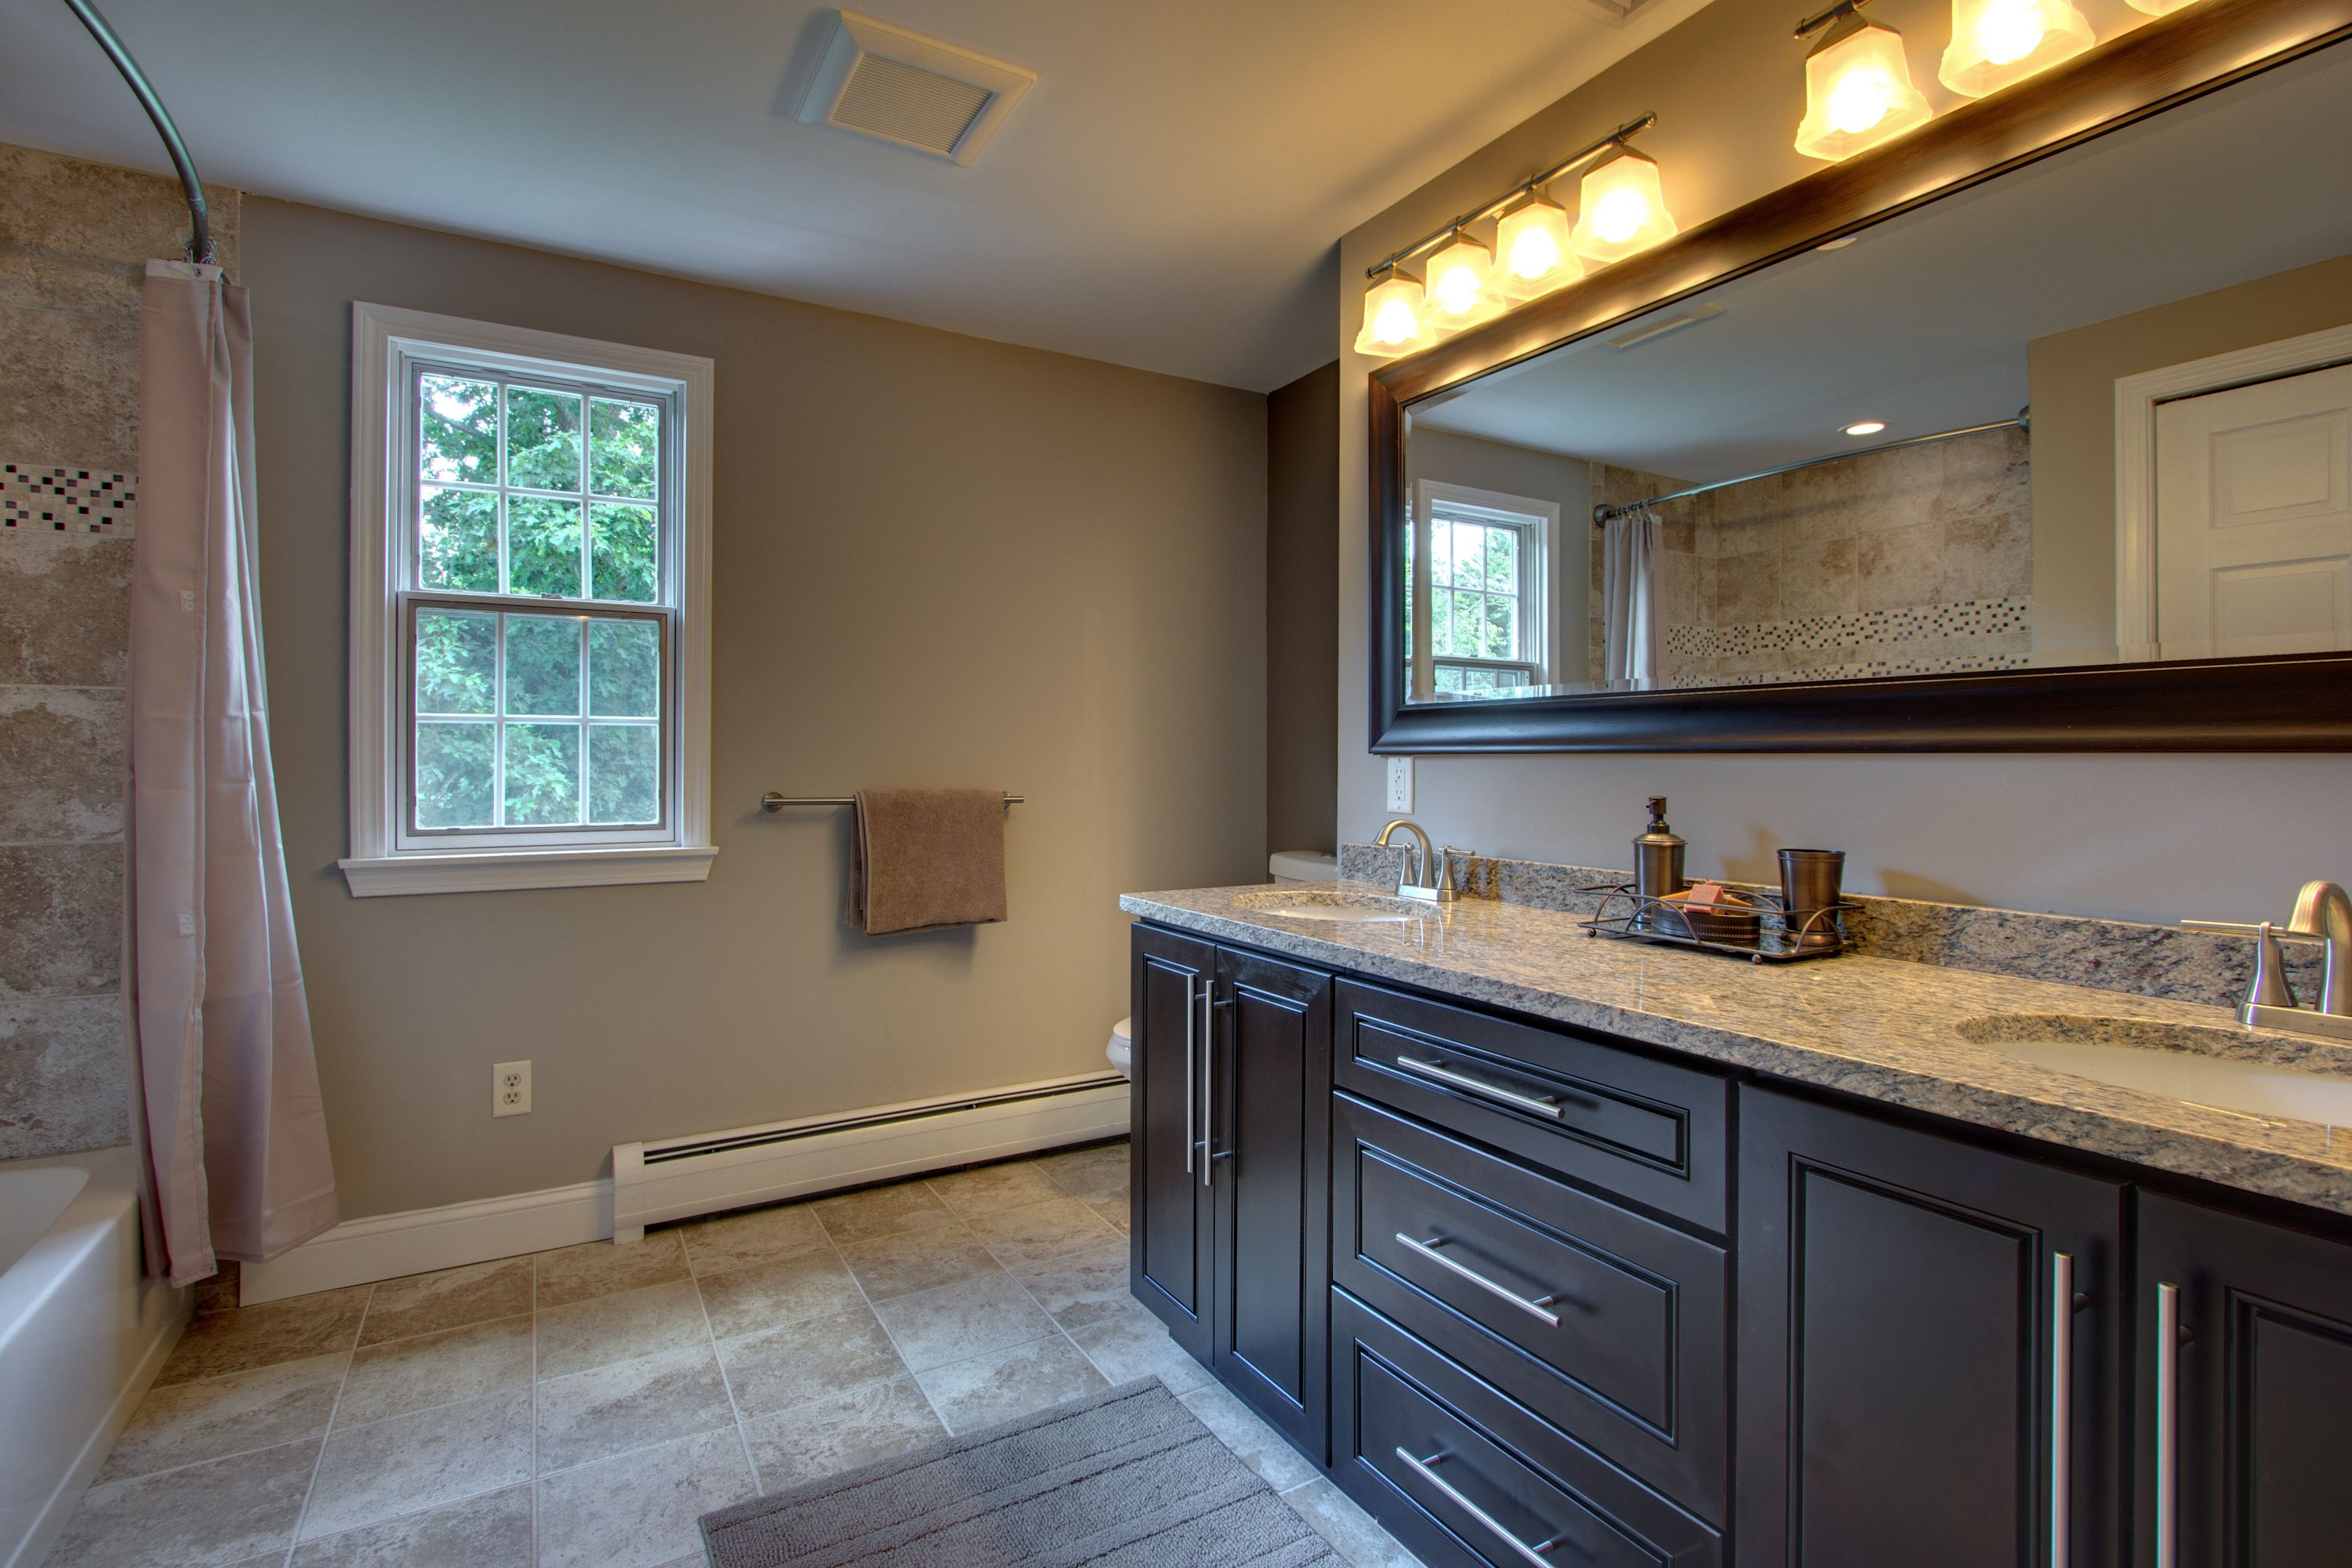 Check Out Our Other Beautiful Bathroom Vanities At Www Jkboston